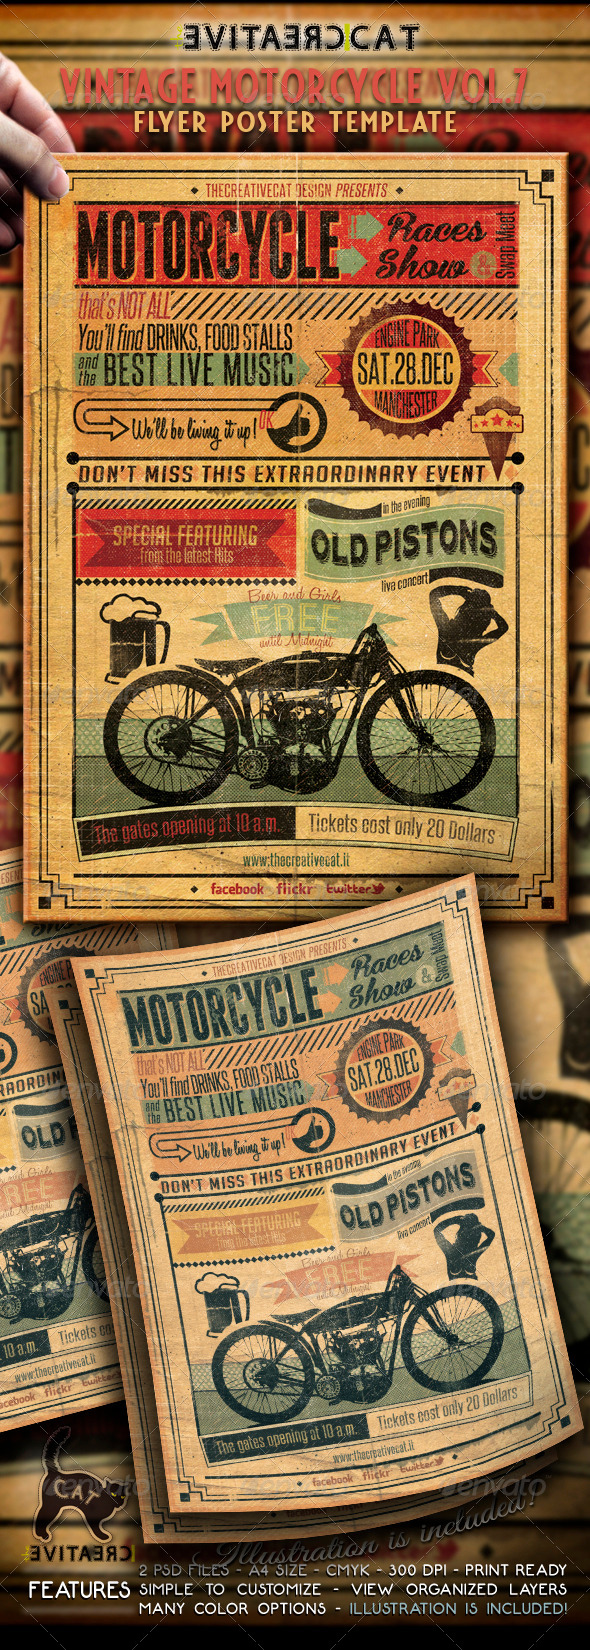 vintage motorcycle flyerposter vol 7 events flyers